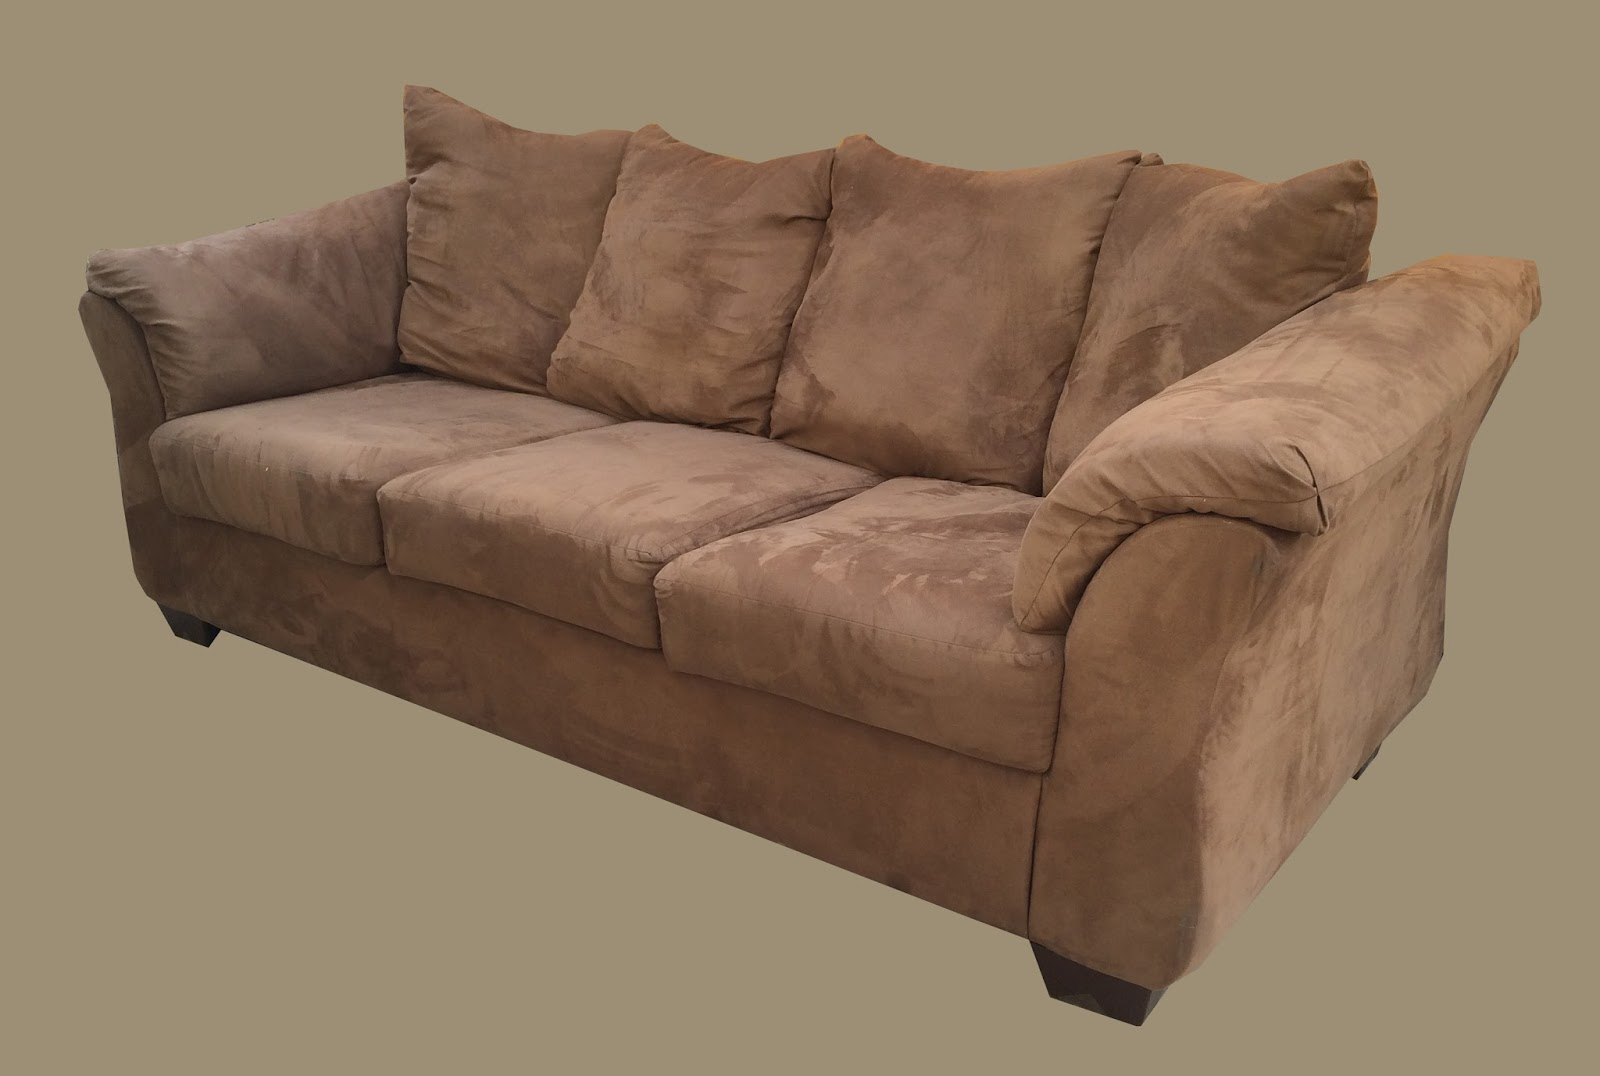 Brown Microsuede Sofa W/ Scatter Back Pillows   $195 $175 SOLD